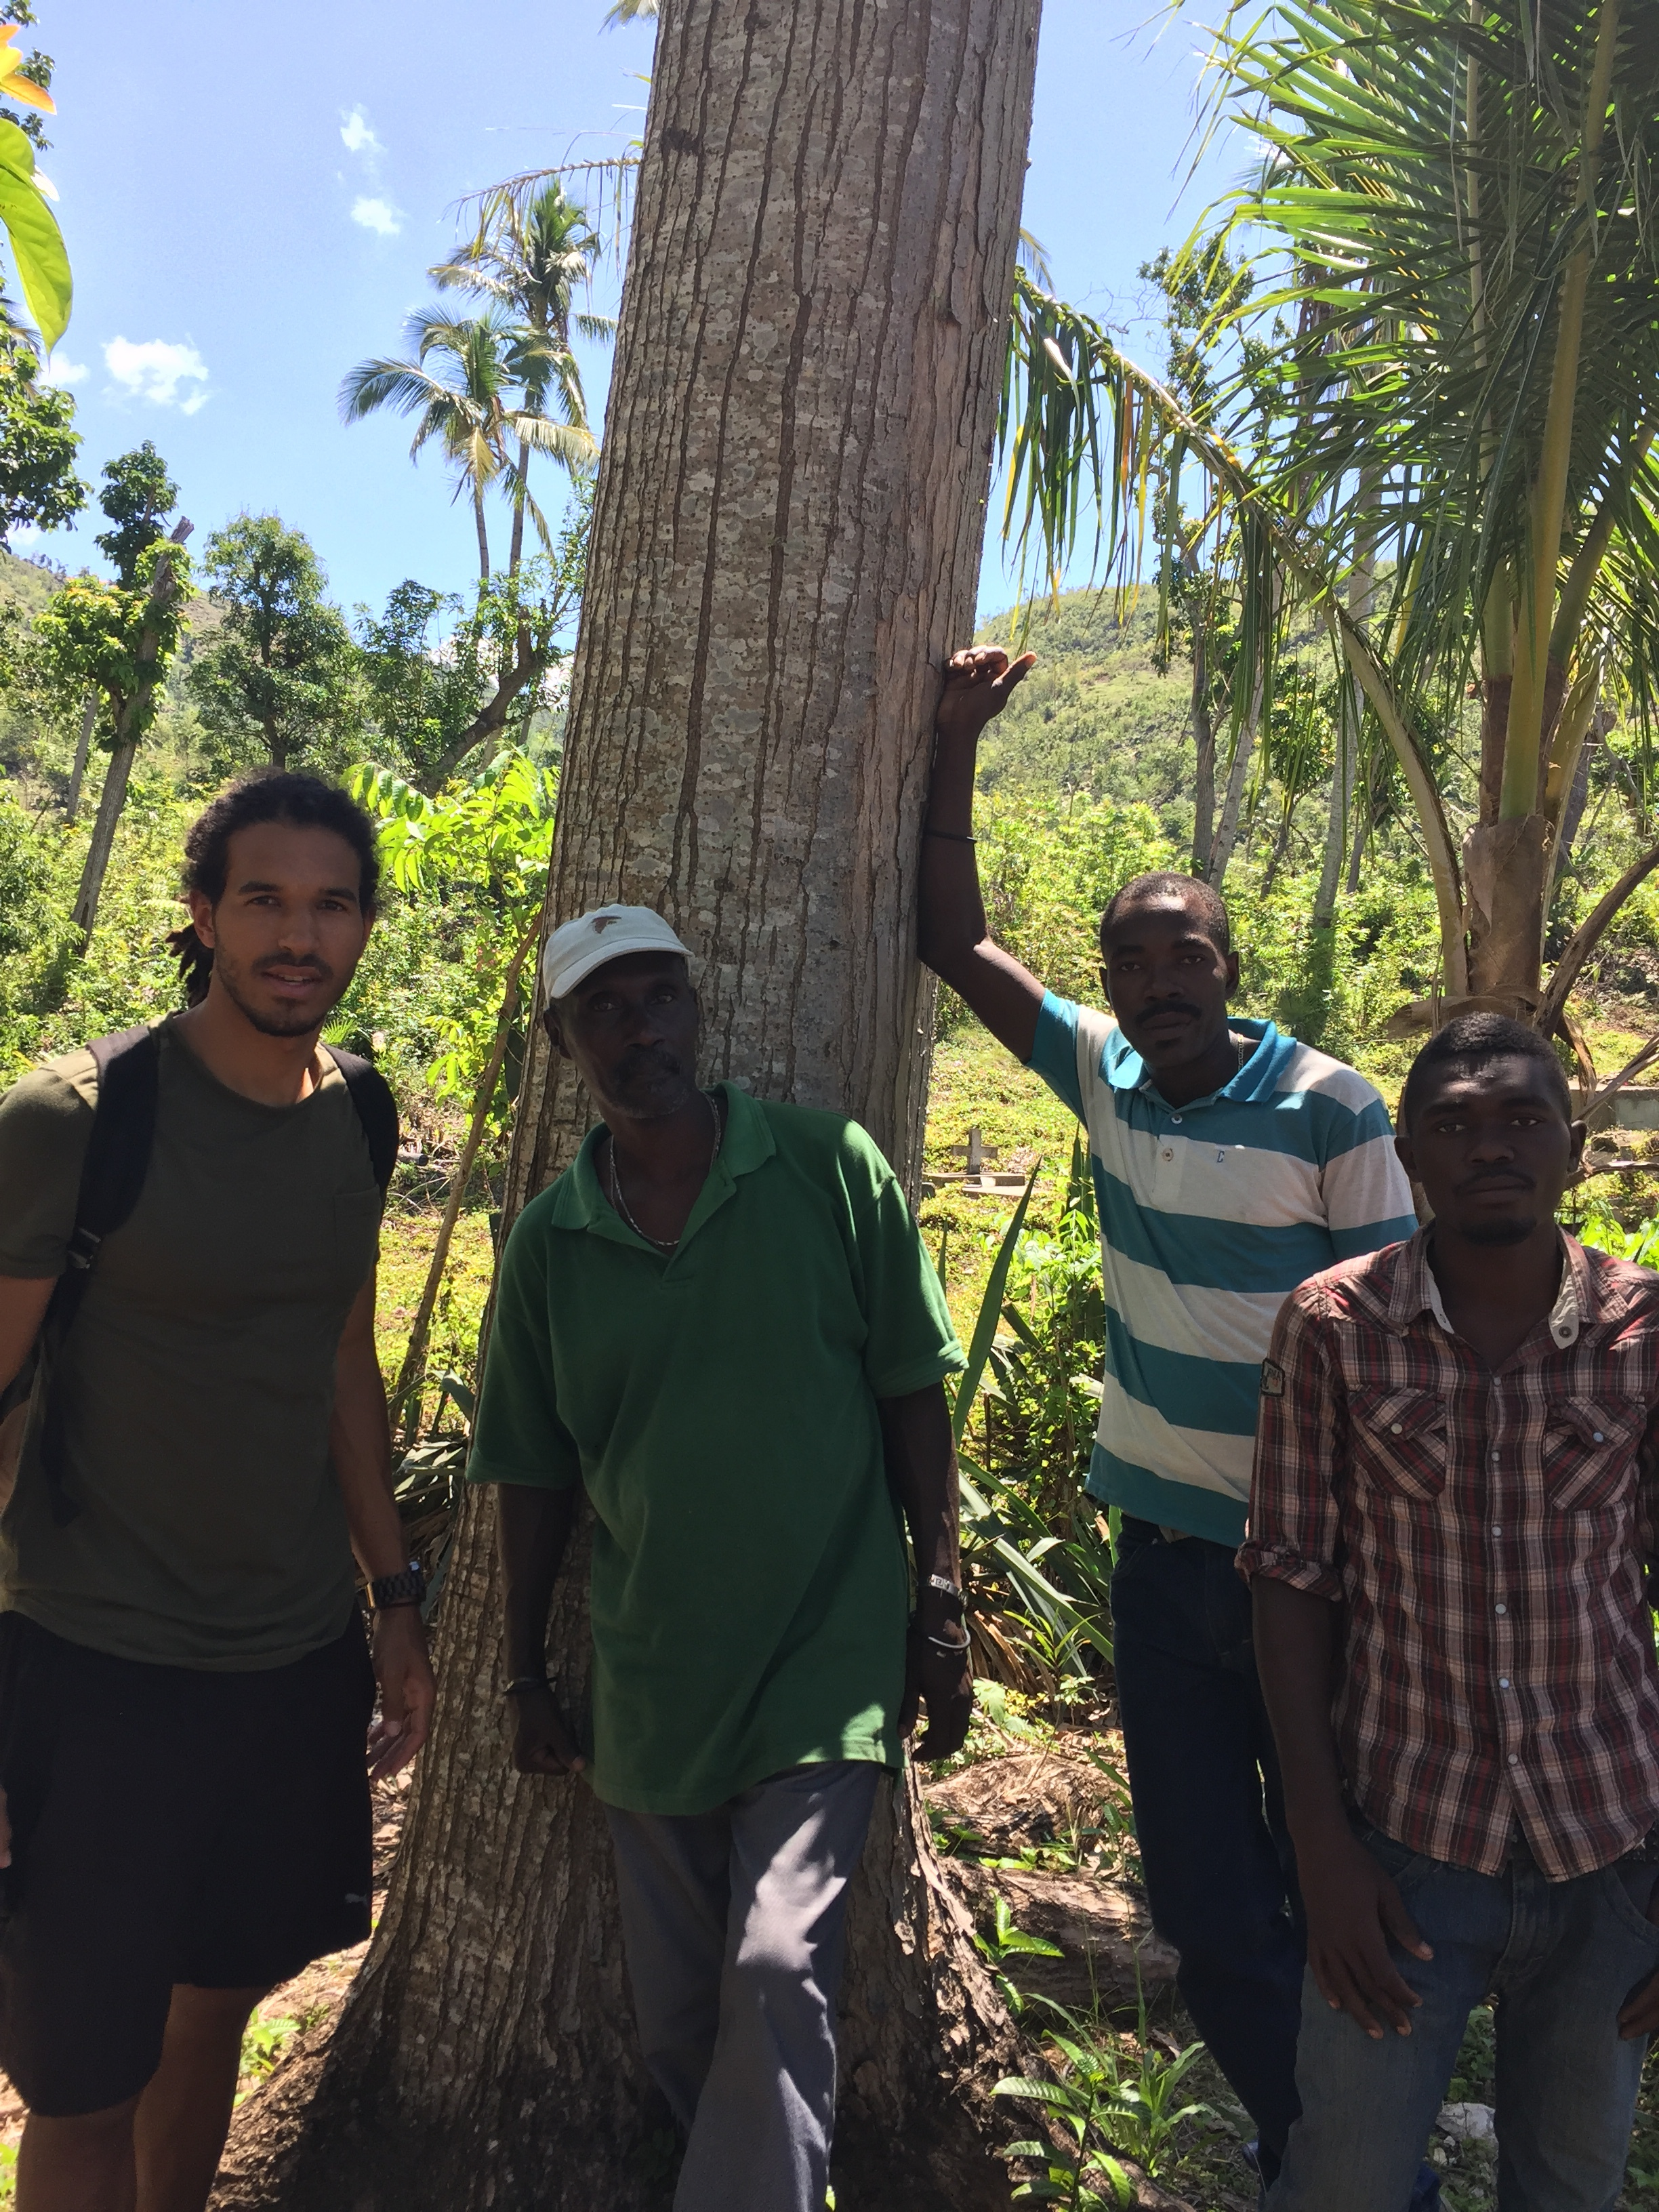 I had the opportunity to meet with many locals and see the progress of past projects in the area. This tree is one of the first planted by TheHaitiTreeProject.org about 10 years ago. Imagine if we could have 1000 trees from our nursery this size in 10 years!